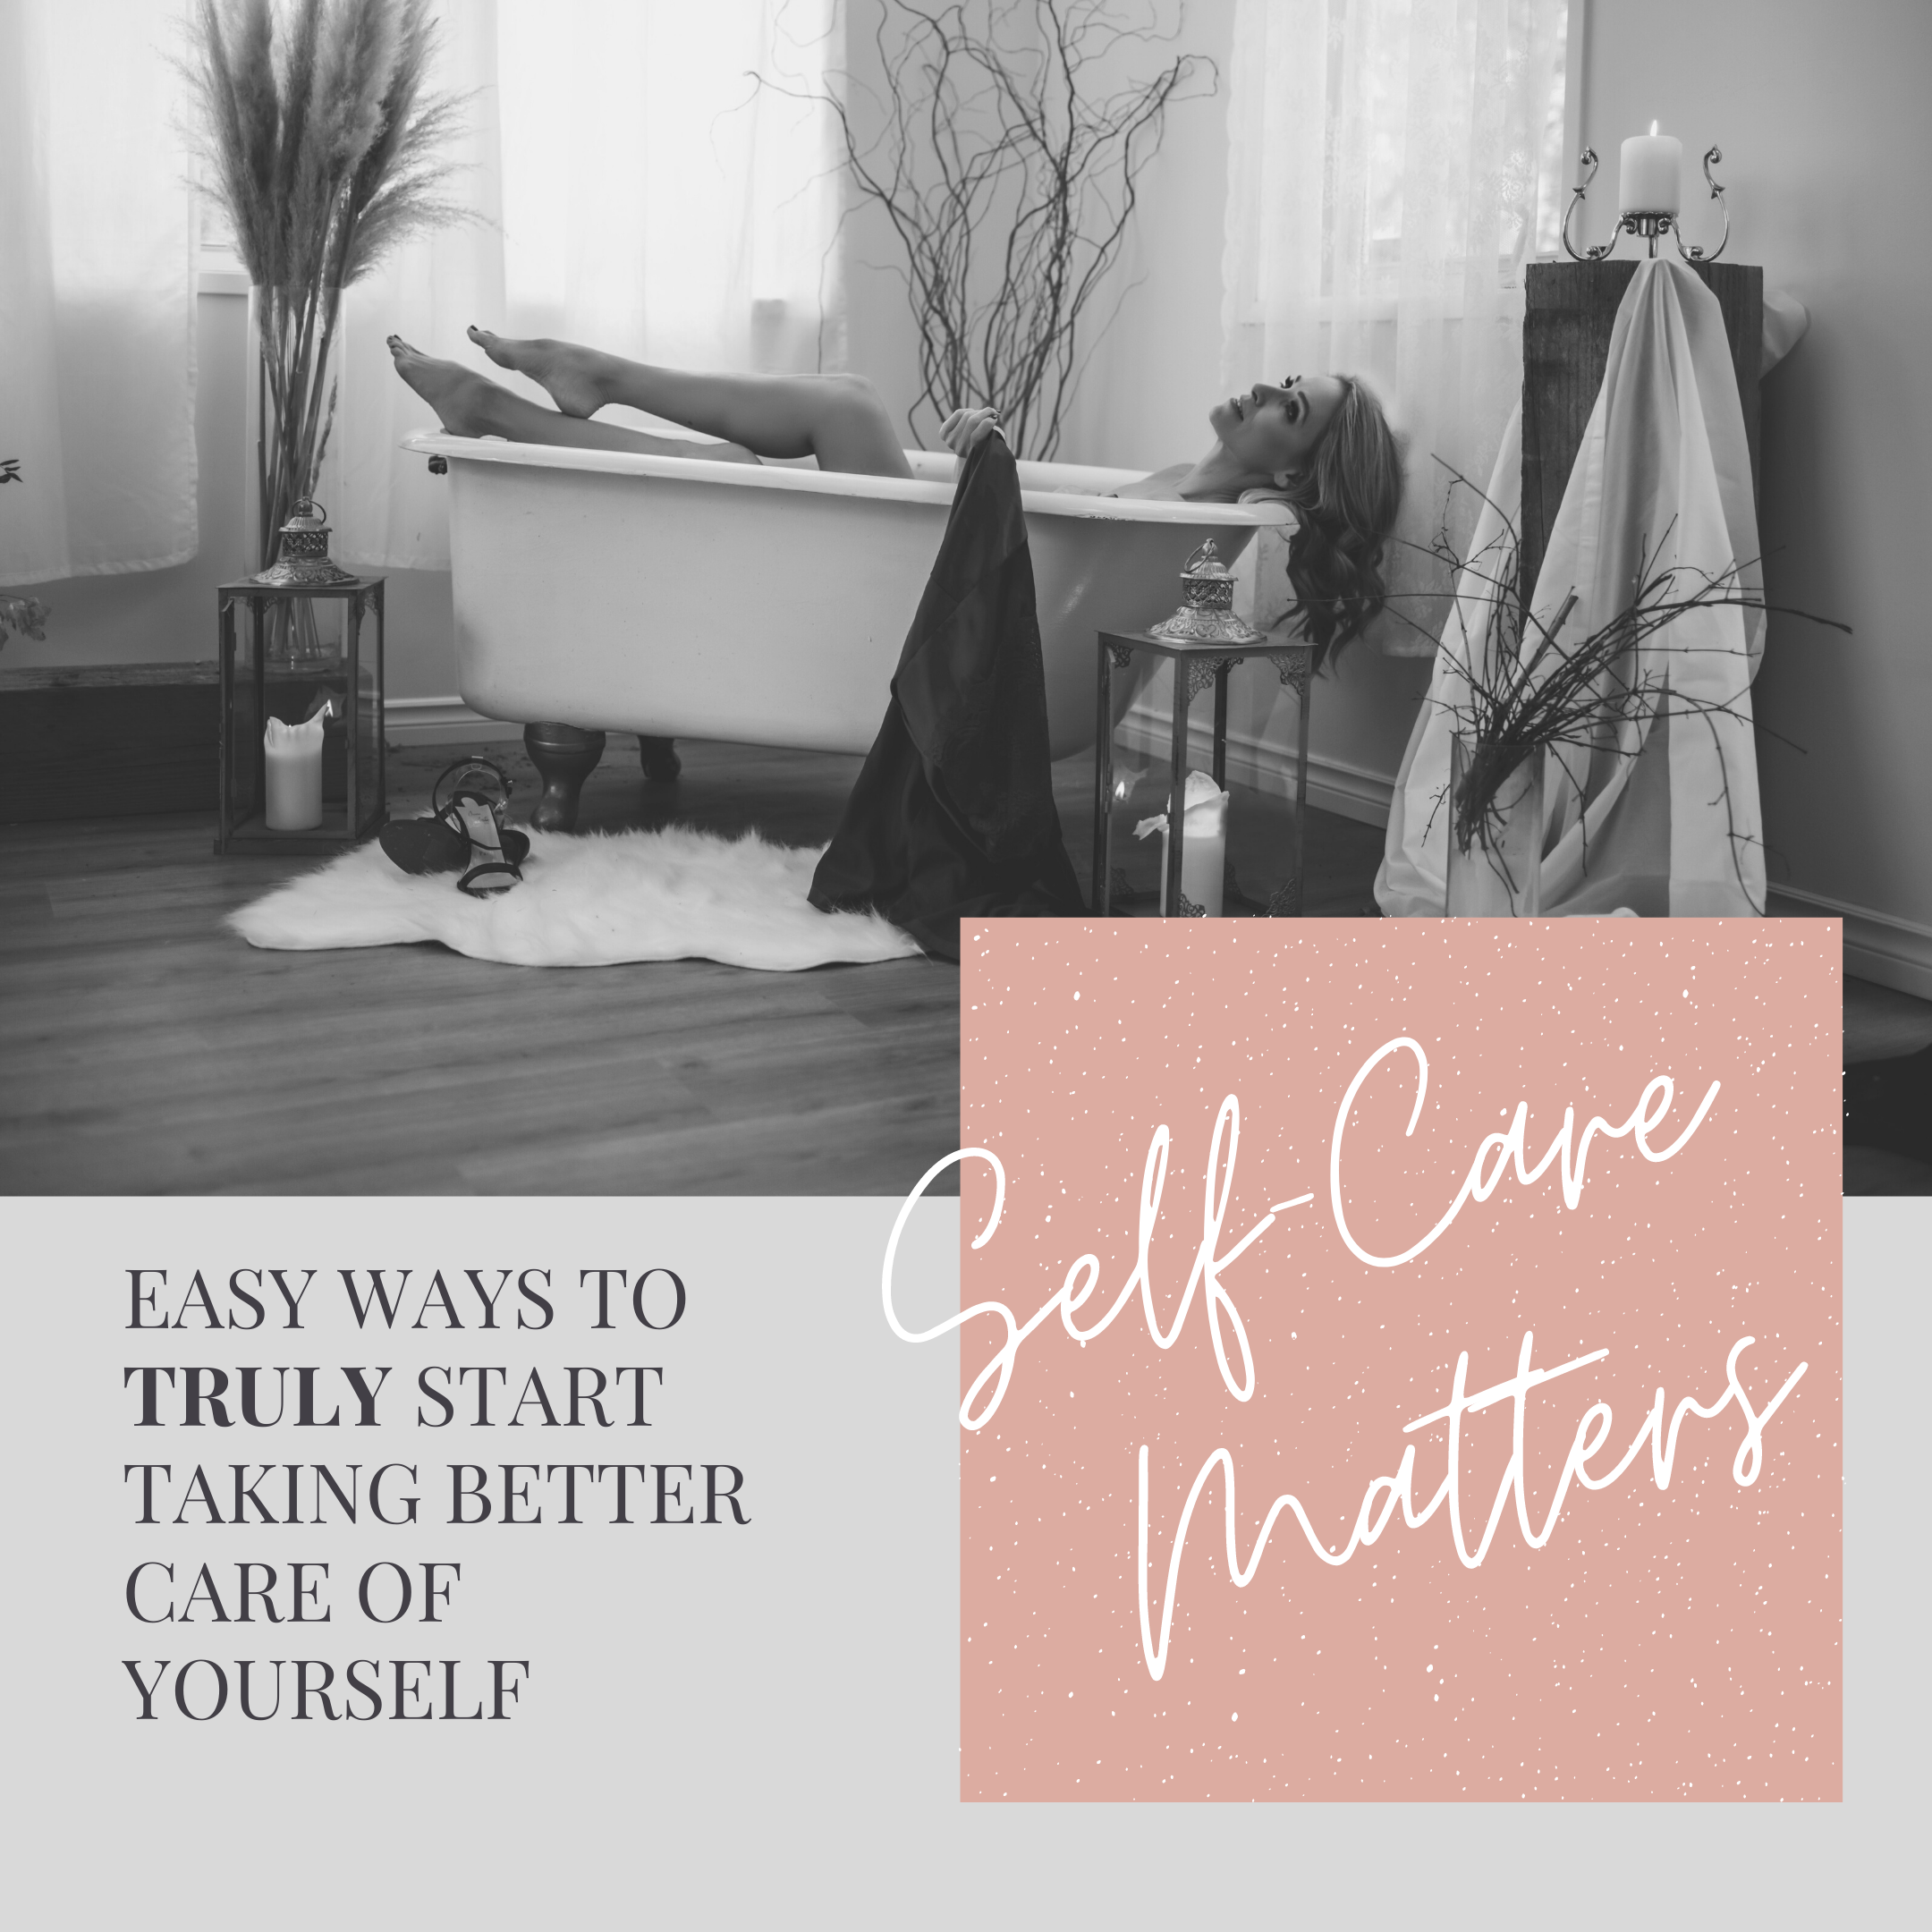 Get started in self-care with these easy tips. And yes we mean REAL self-care, not just a bubble bath. Are you ready?